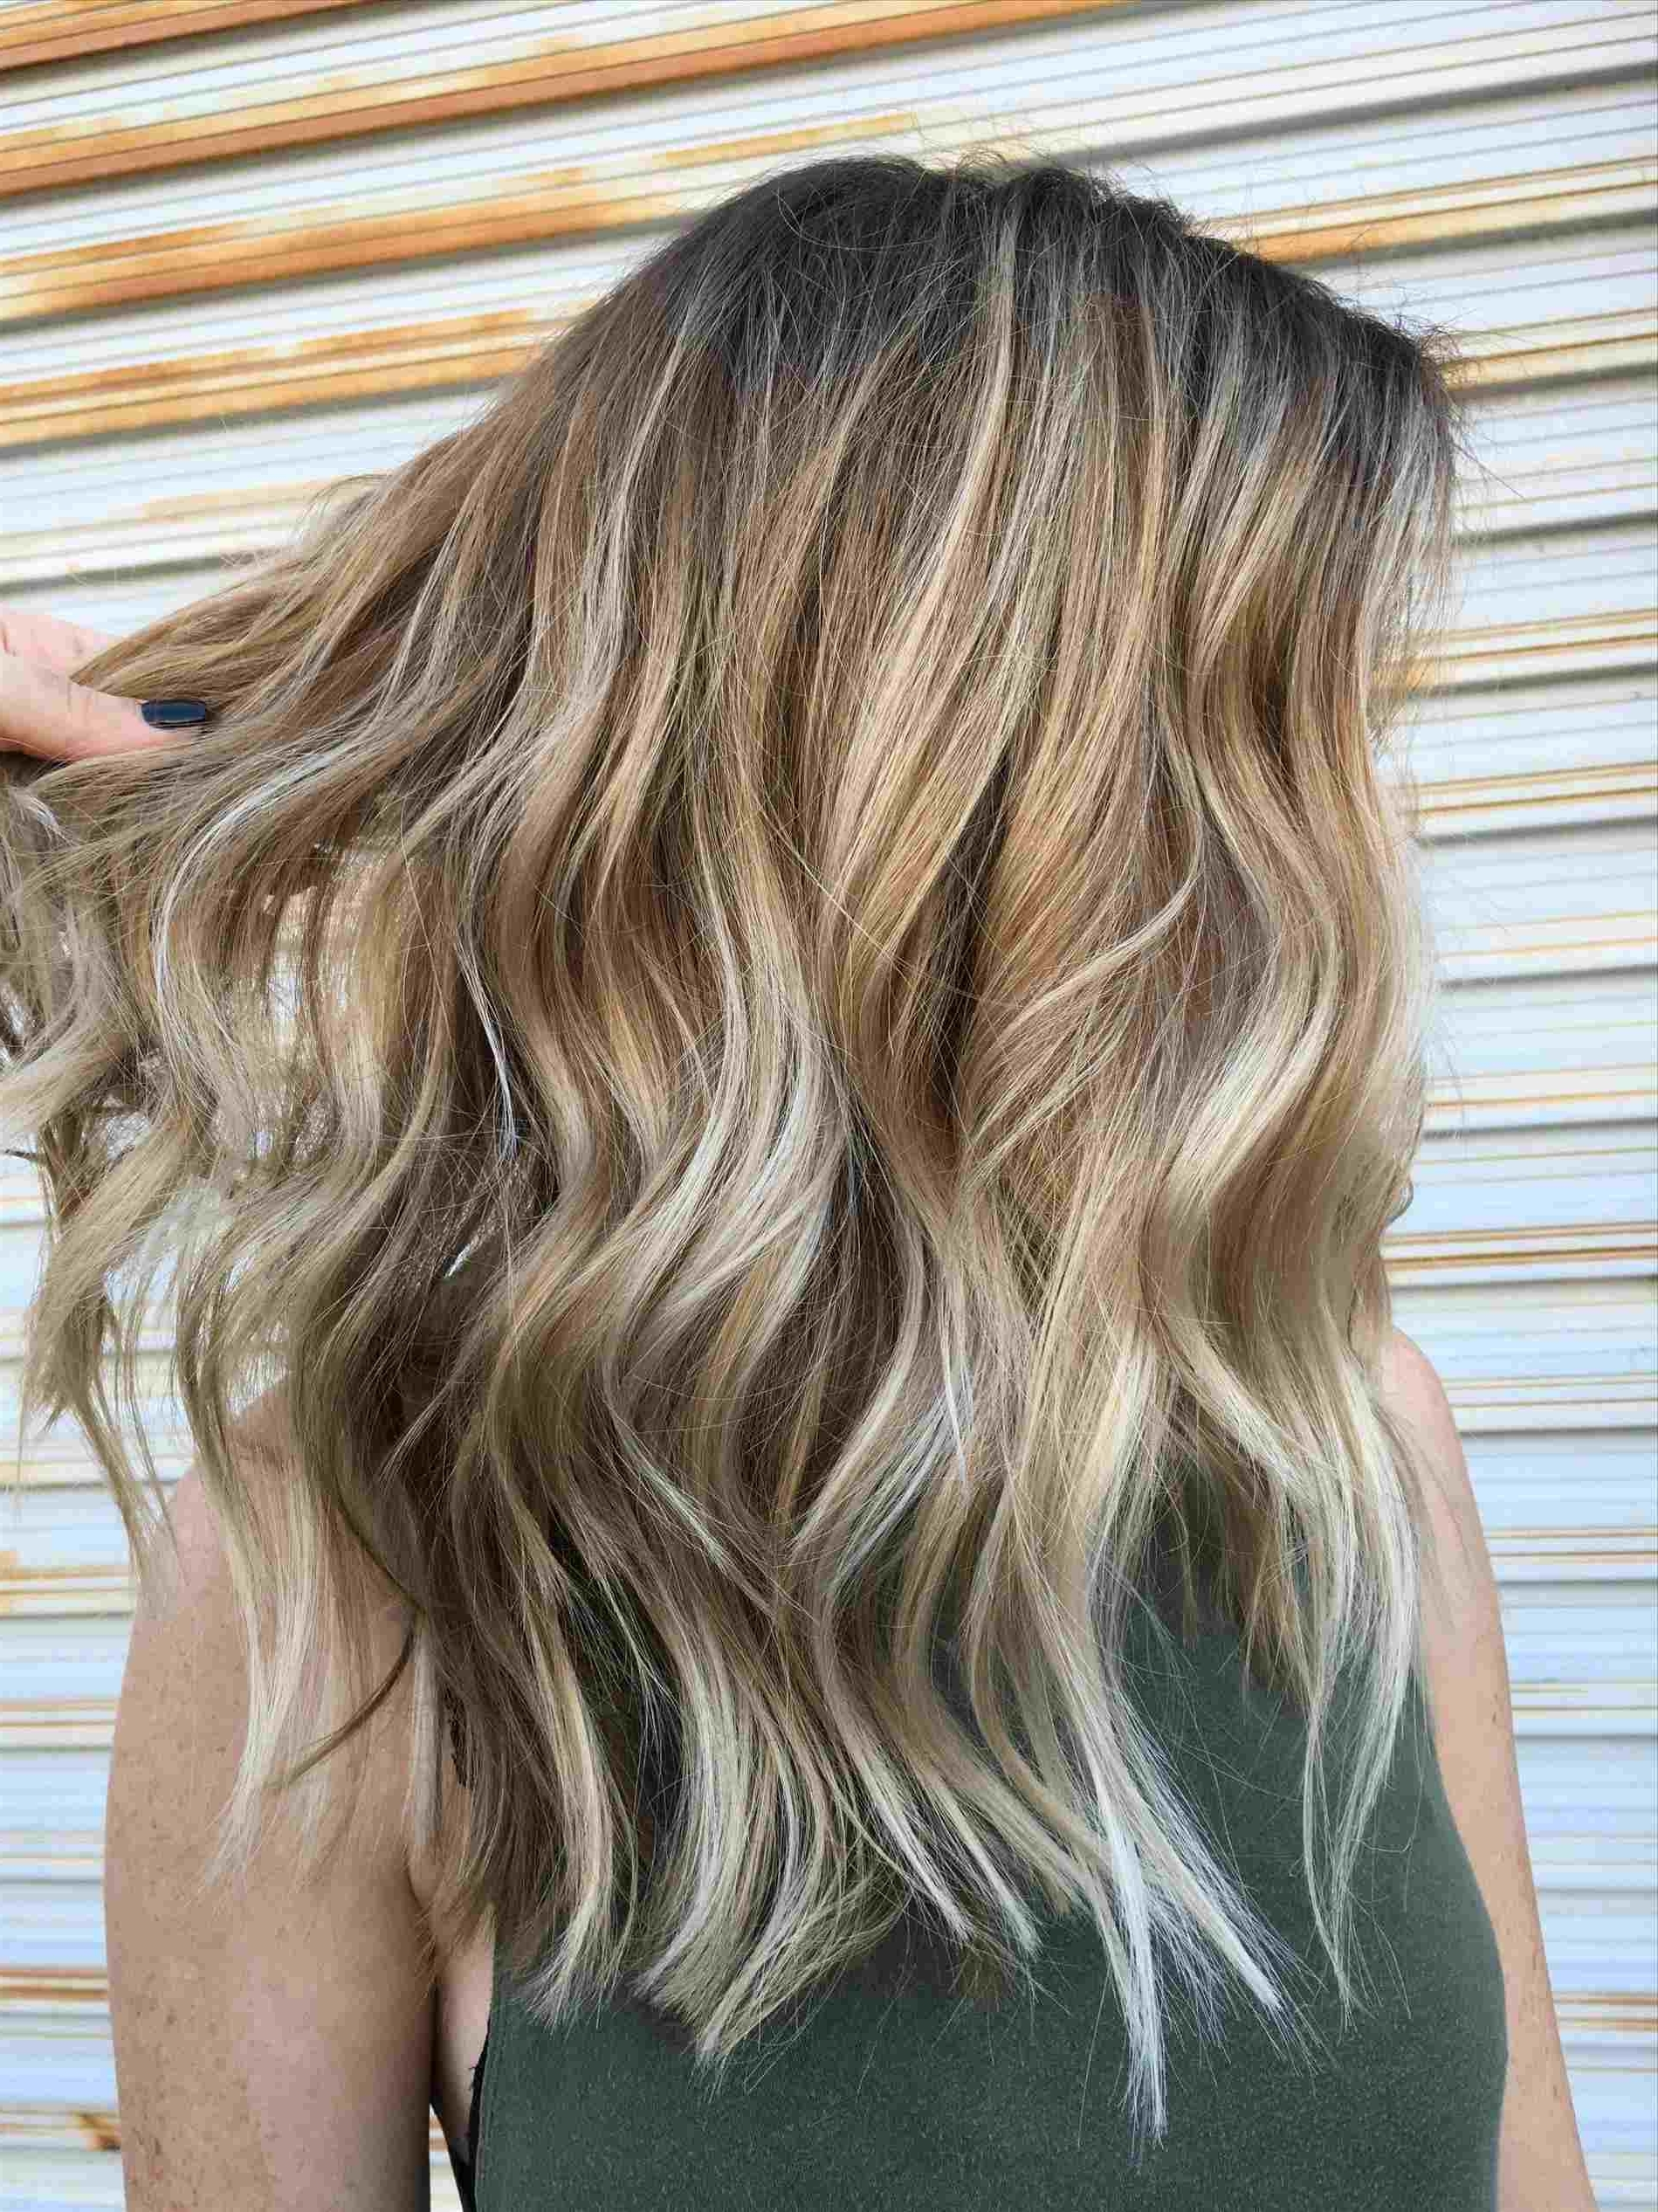 Icy Ashy Blonde Balayage Highlights Shadow Root Waves Pertaining To Favorite Icy Highlights And Loose Curls Blonde Hairstyles (View 11 of 20)